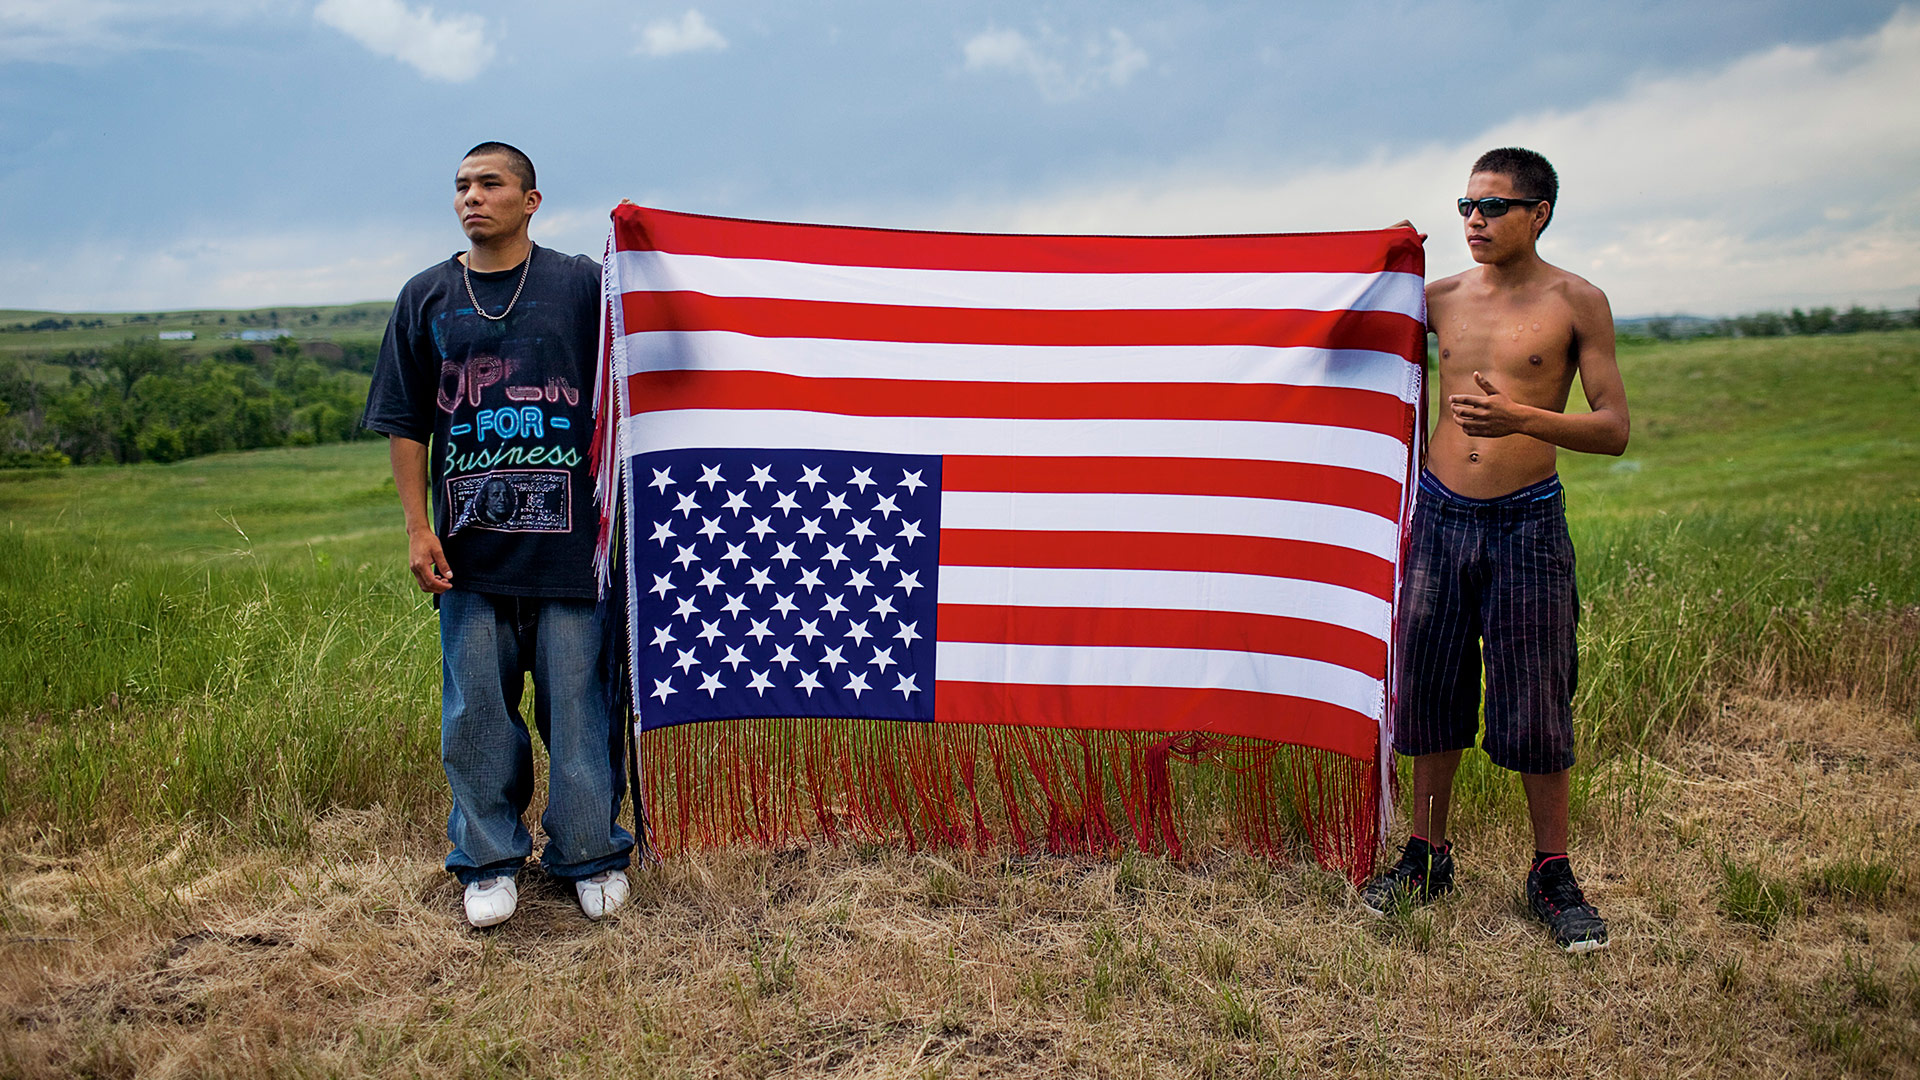 © Aaron Huey. Oglala youths hold an upside-down flag, an international symbol of distress and an act of defiance toward the U.S. government, at a rally to commemorate a 1975 shoot-out between American Indian Movement (AIM) activists and FBI agents. Two agents and one AIM member died; AIM�s Leonard Peltier was jailed for life. | Festival della Fotografia Etica 2016 - Lodi, 8 - 30 ottobre 2016